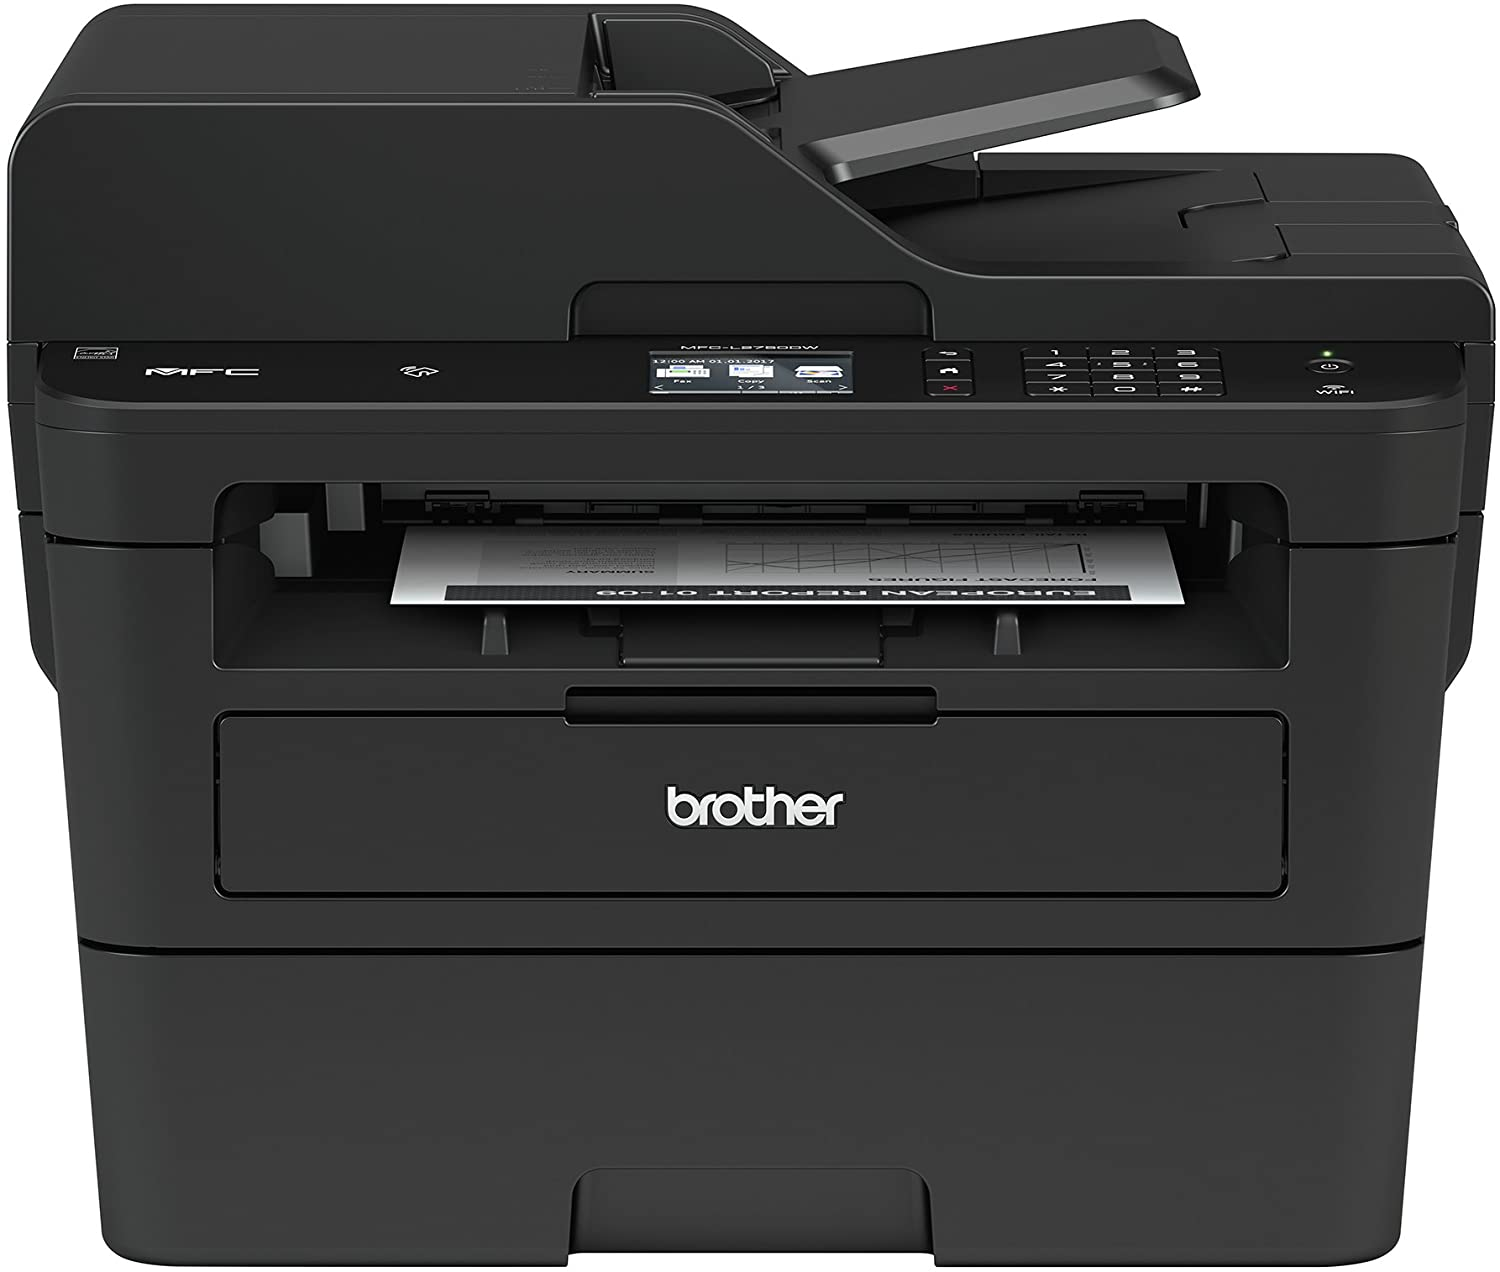 Brother MFC-L2750DW multifunction printer B/W MFCL2750DW